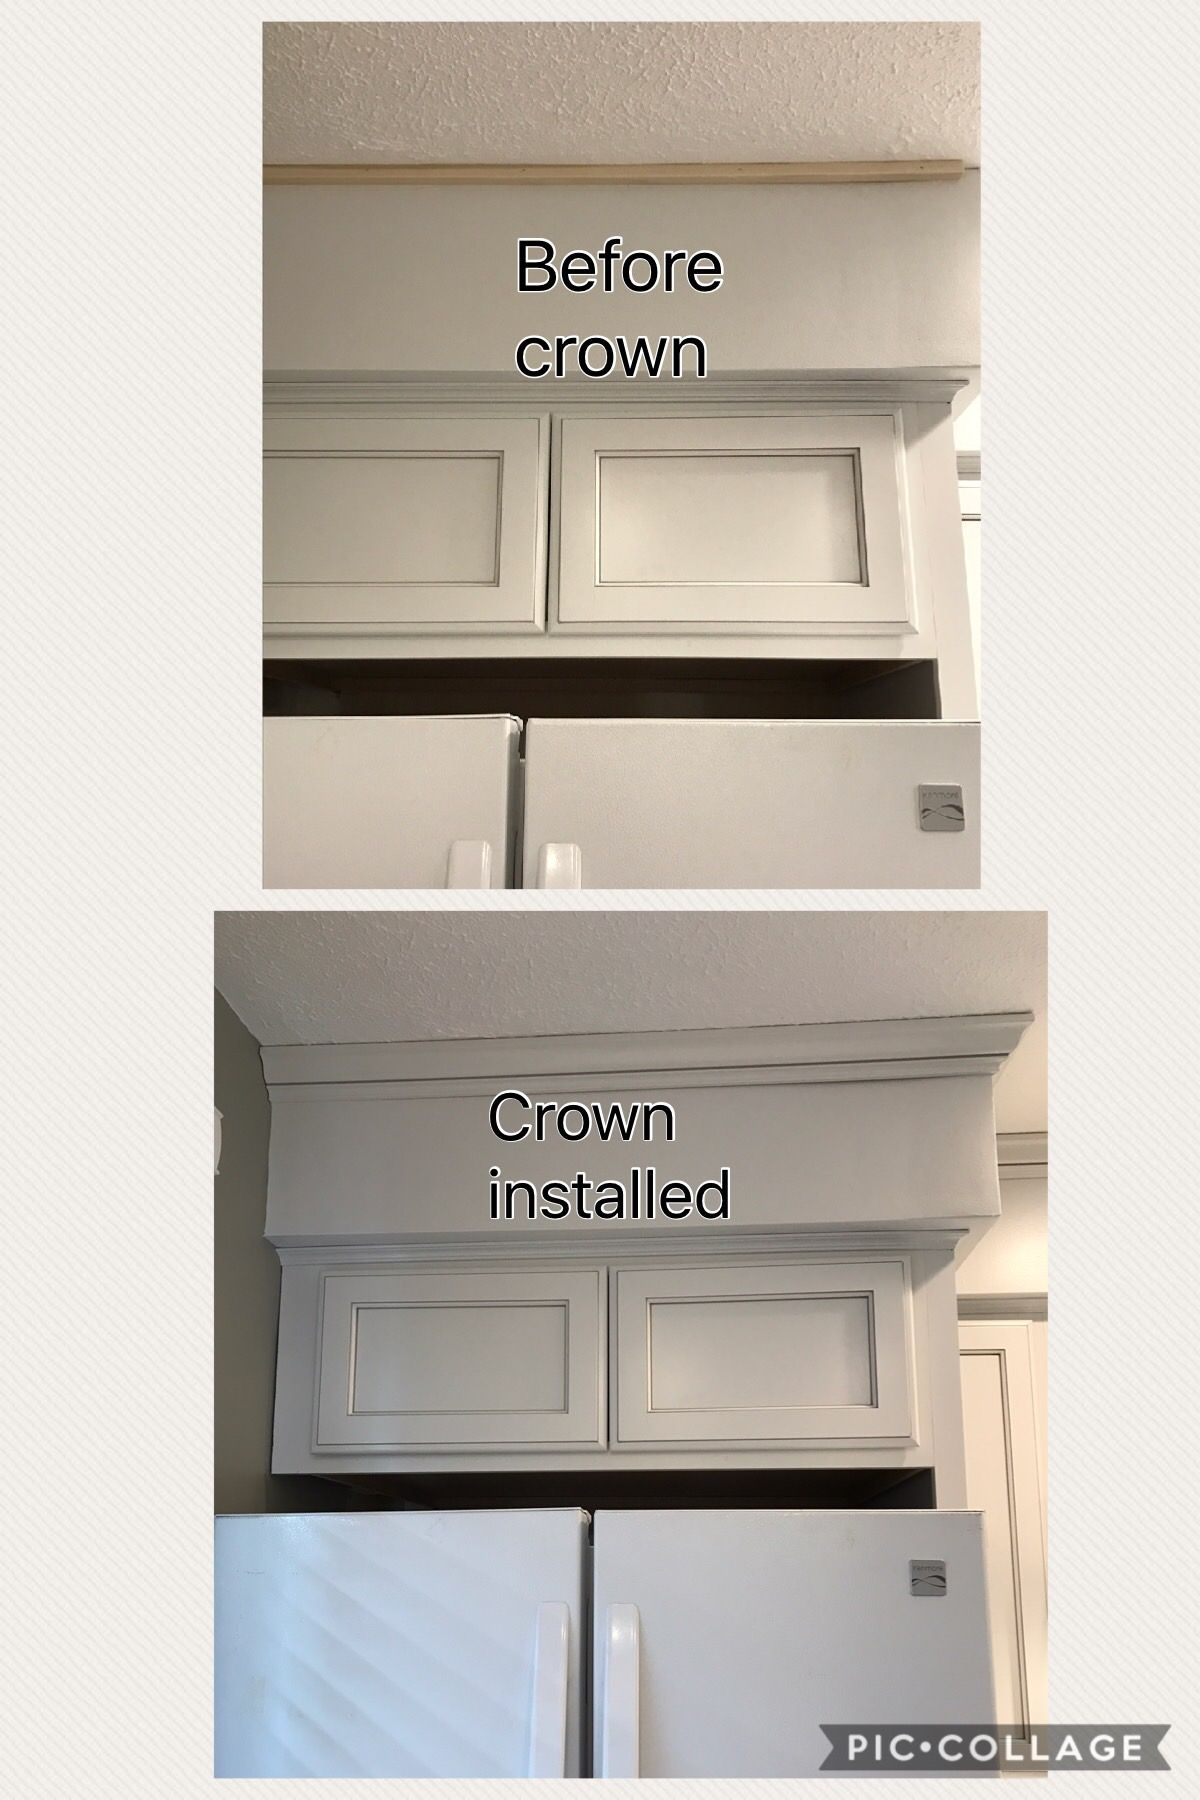 8 4 17 Before And After Of Crown Molding Above Fridge Kitchen Projects Kitchen Kitchen Remodel